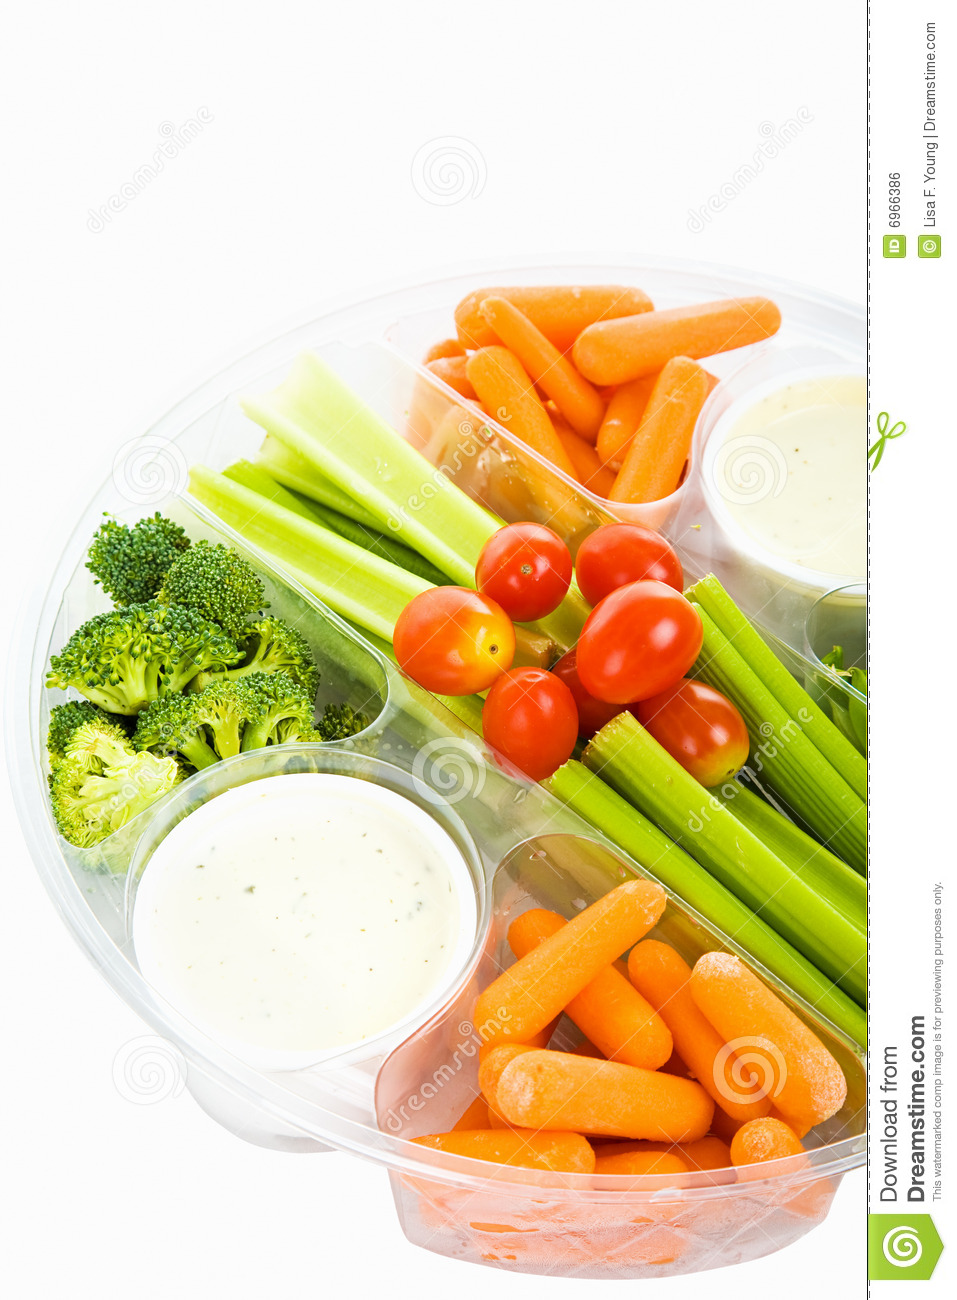 Party Tray Of Fresh Veggies And Dip Isolated On White With Clipping